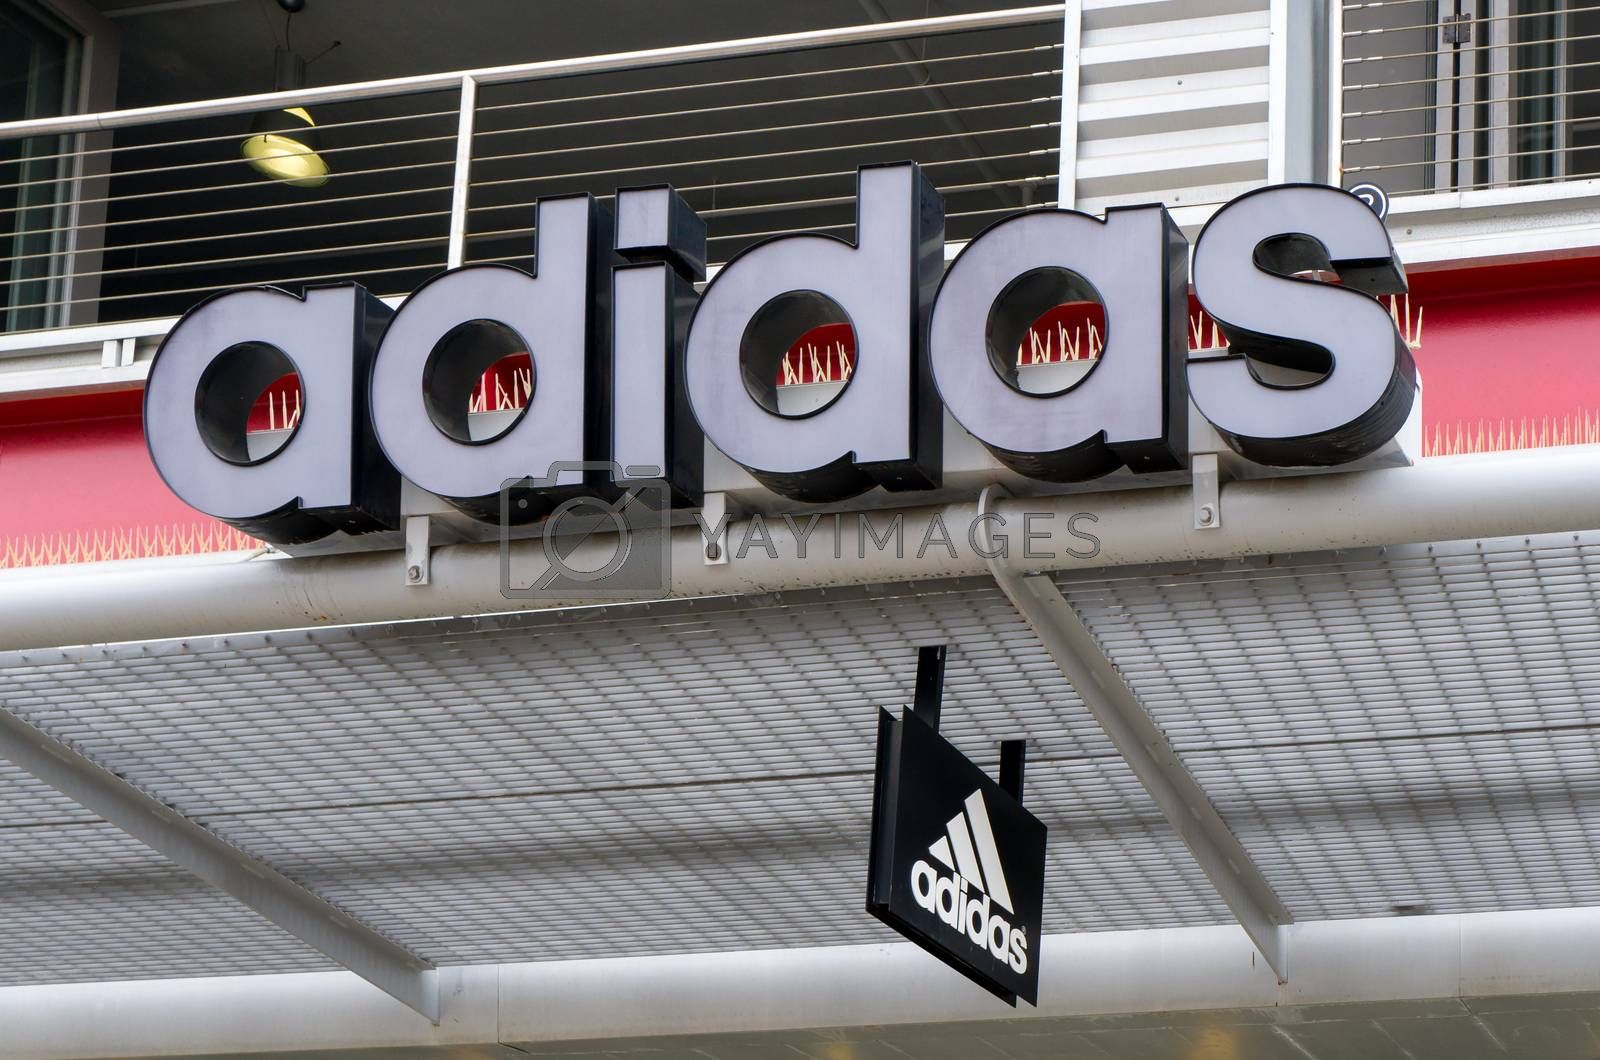 SANTA MONICA, CA/USA - MAY 12, 2016: Adidas retail store exterior and logo. Adidas is a German multinational corporation that designs and manufactures sports shoes, clothing and accessories.